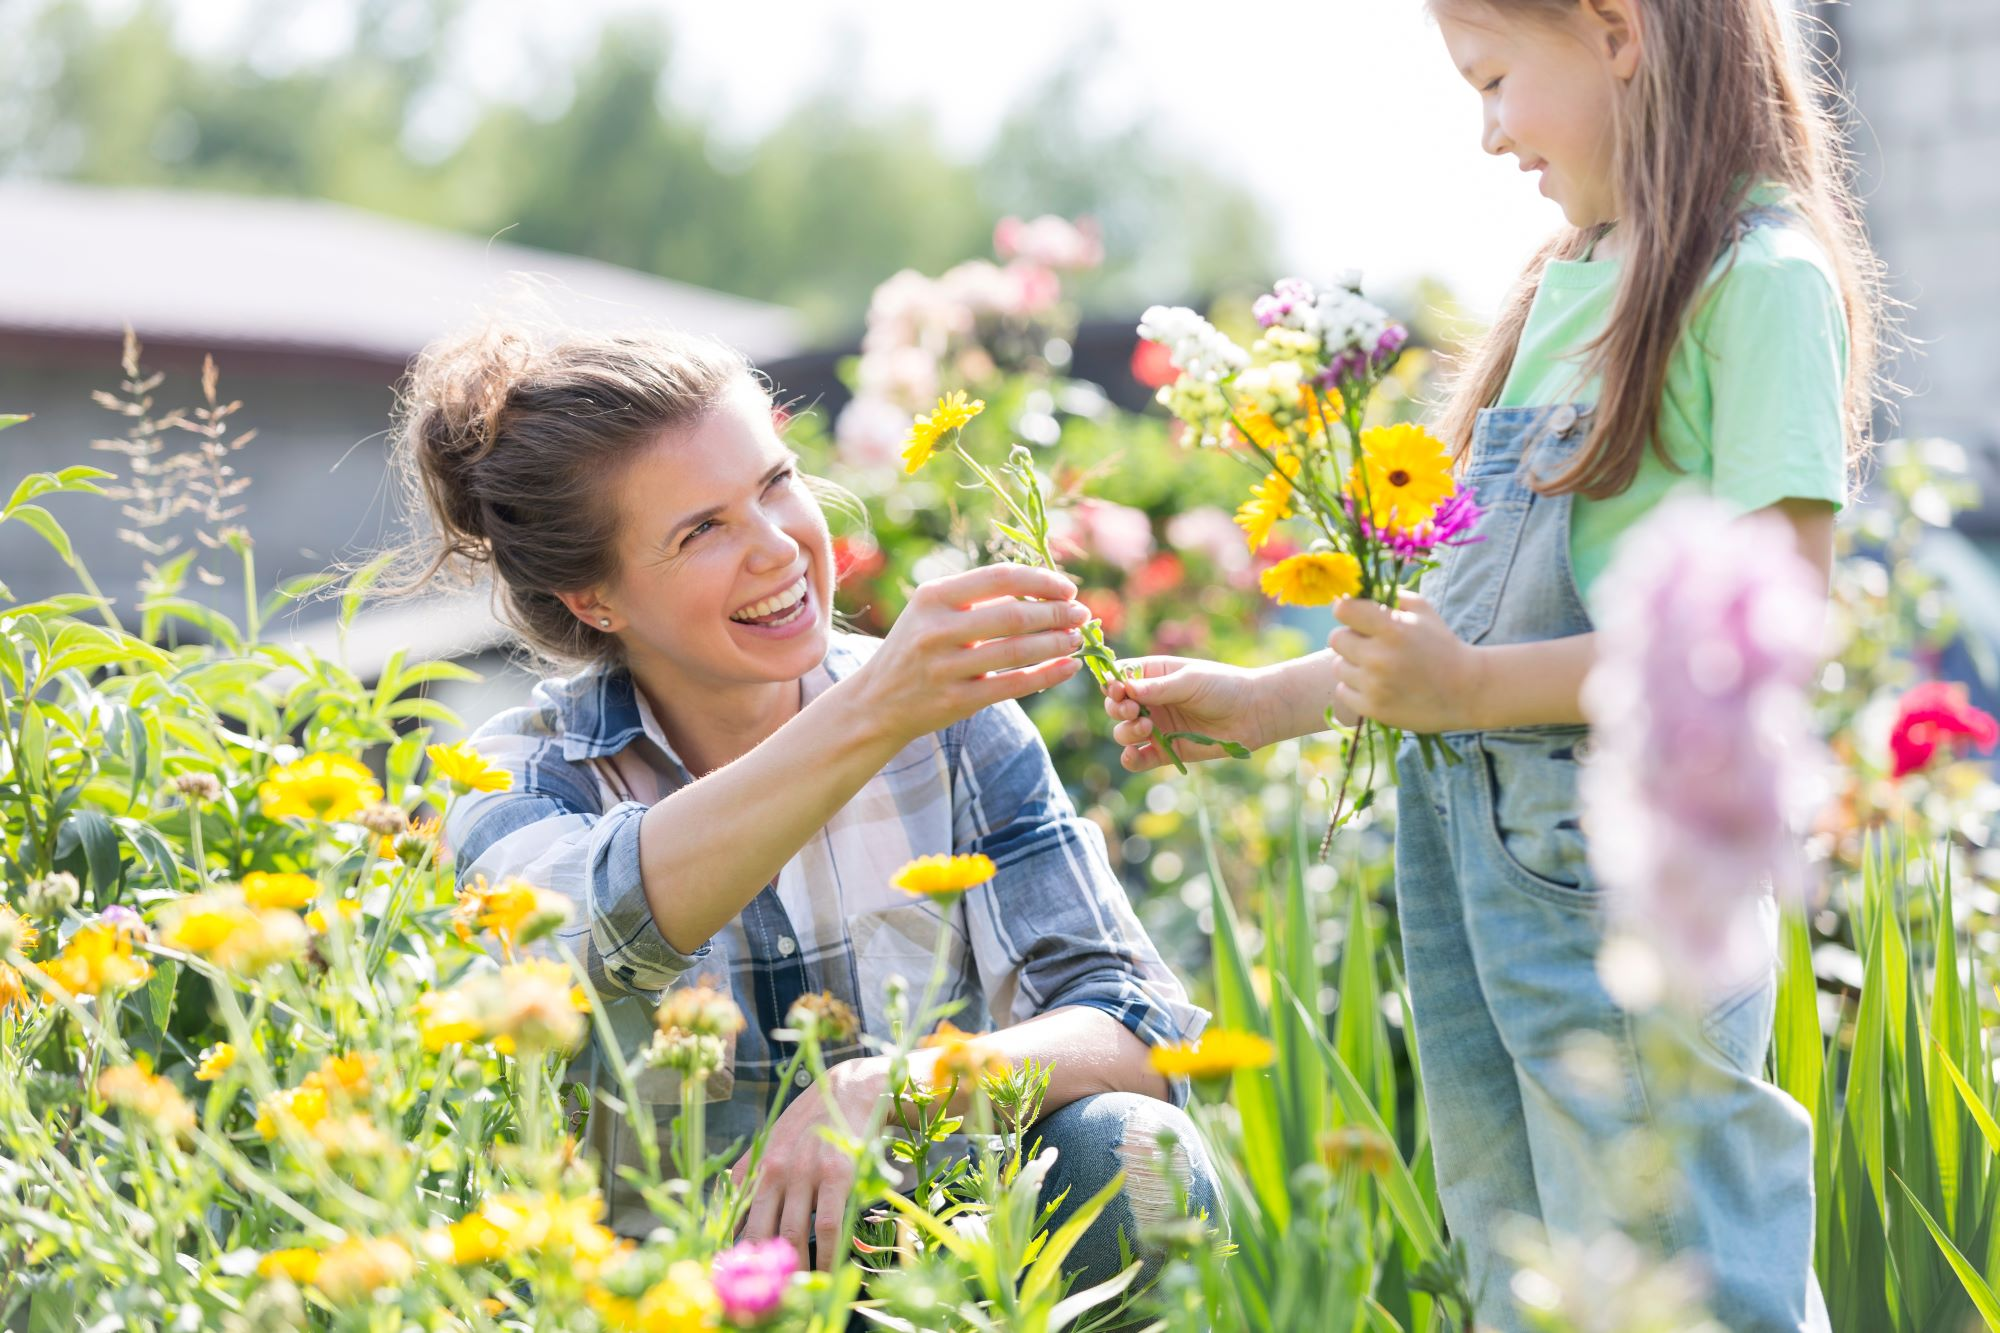 Woman handing flowers from garden to young girl